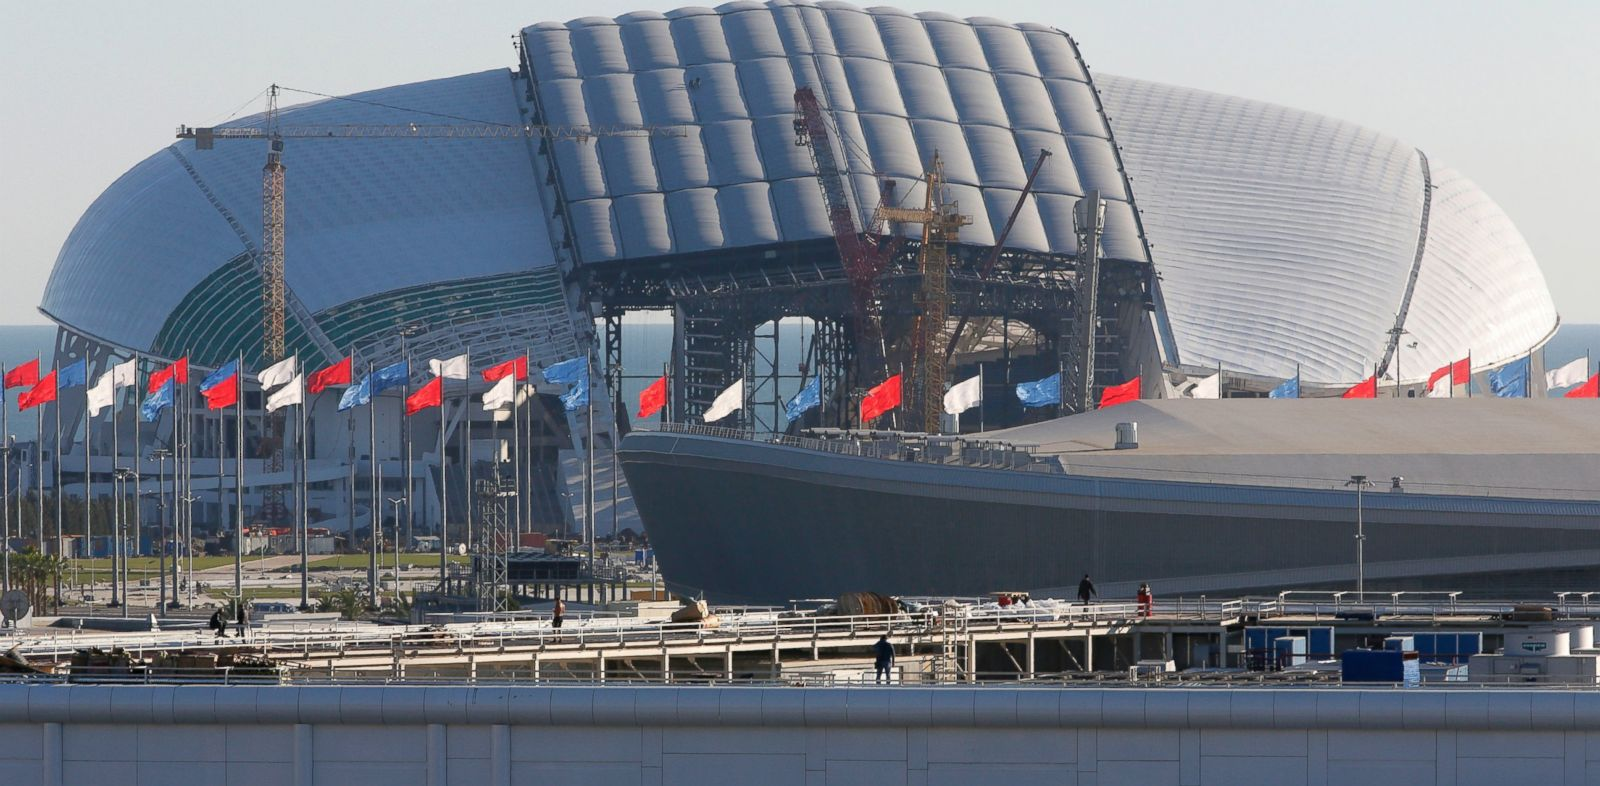 PHOTO: The Fisht Olympic Stadium in Sochi, Russia, Oct. 25, 2013. The stadium is one of the venues for the 2014 Winter Olympics.